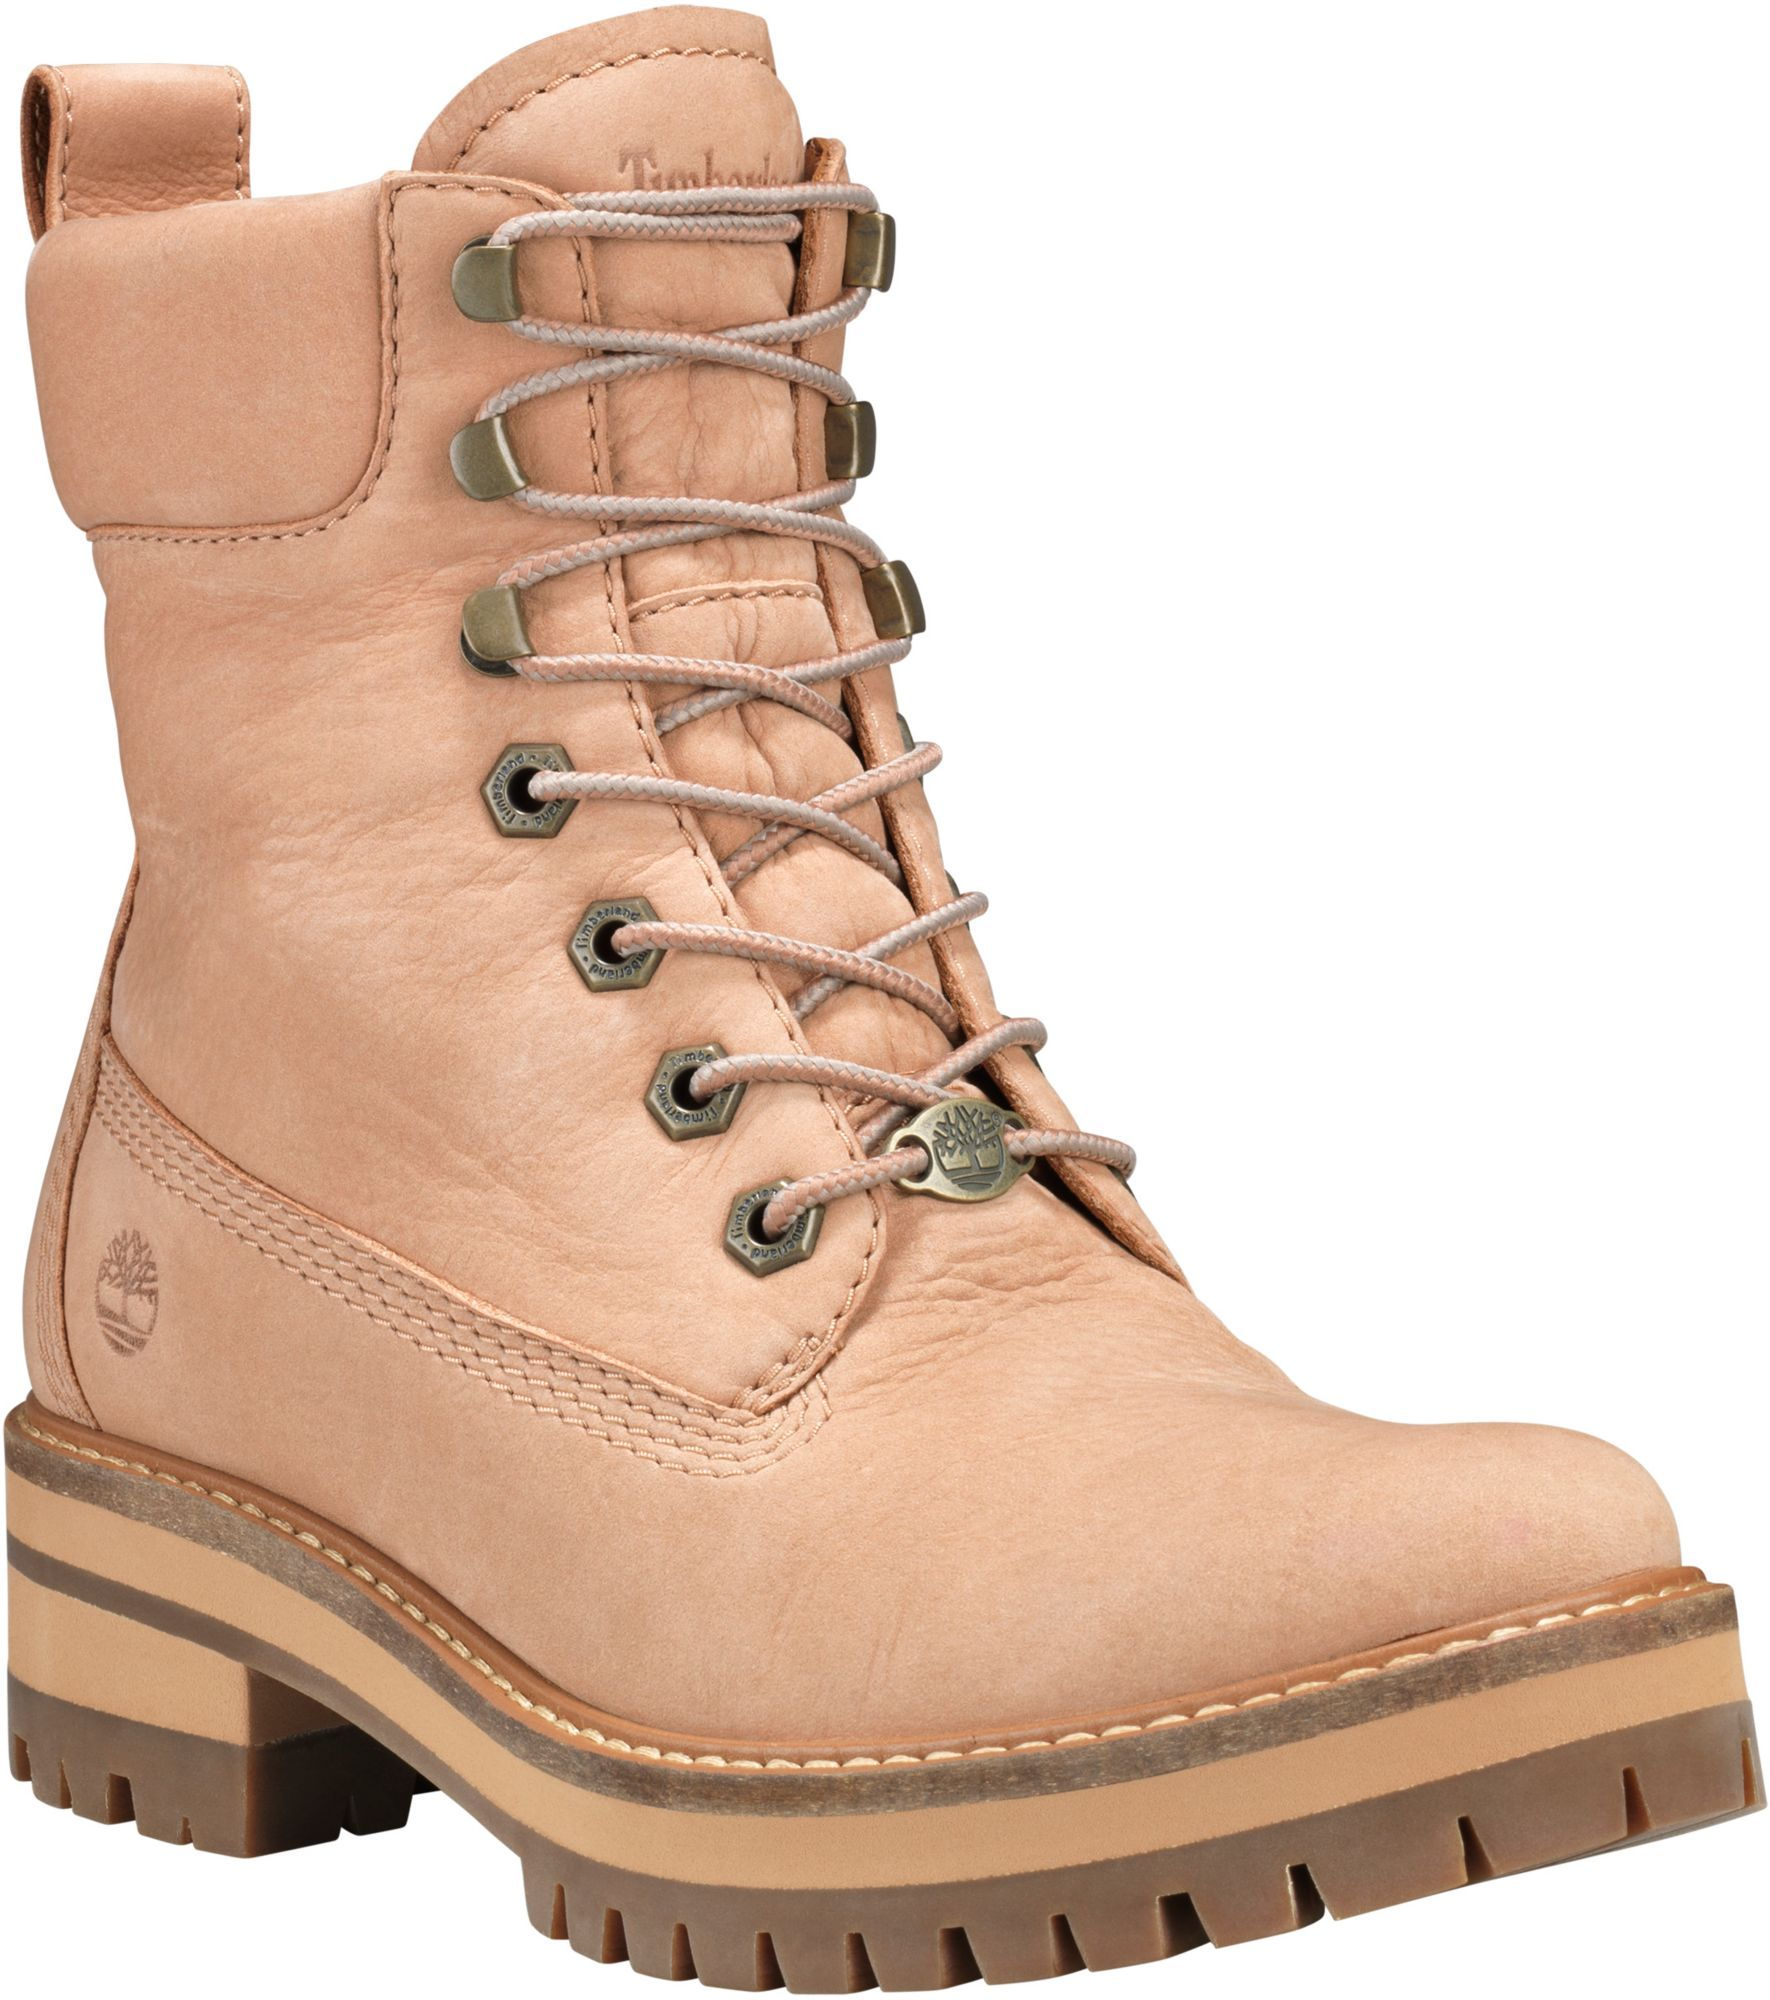 27cfd96ffc2 Timberland Women's Courmayeur Valley 6'' Casual Boots in 2019 ...